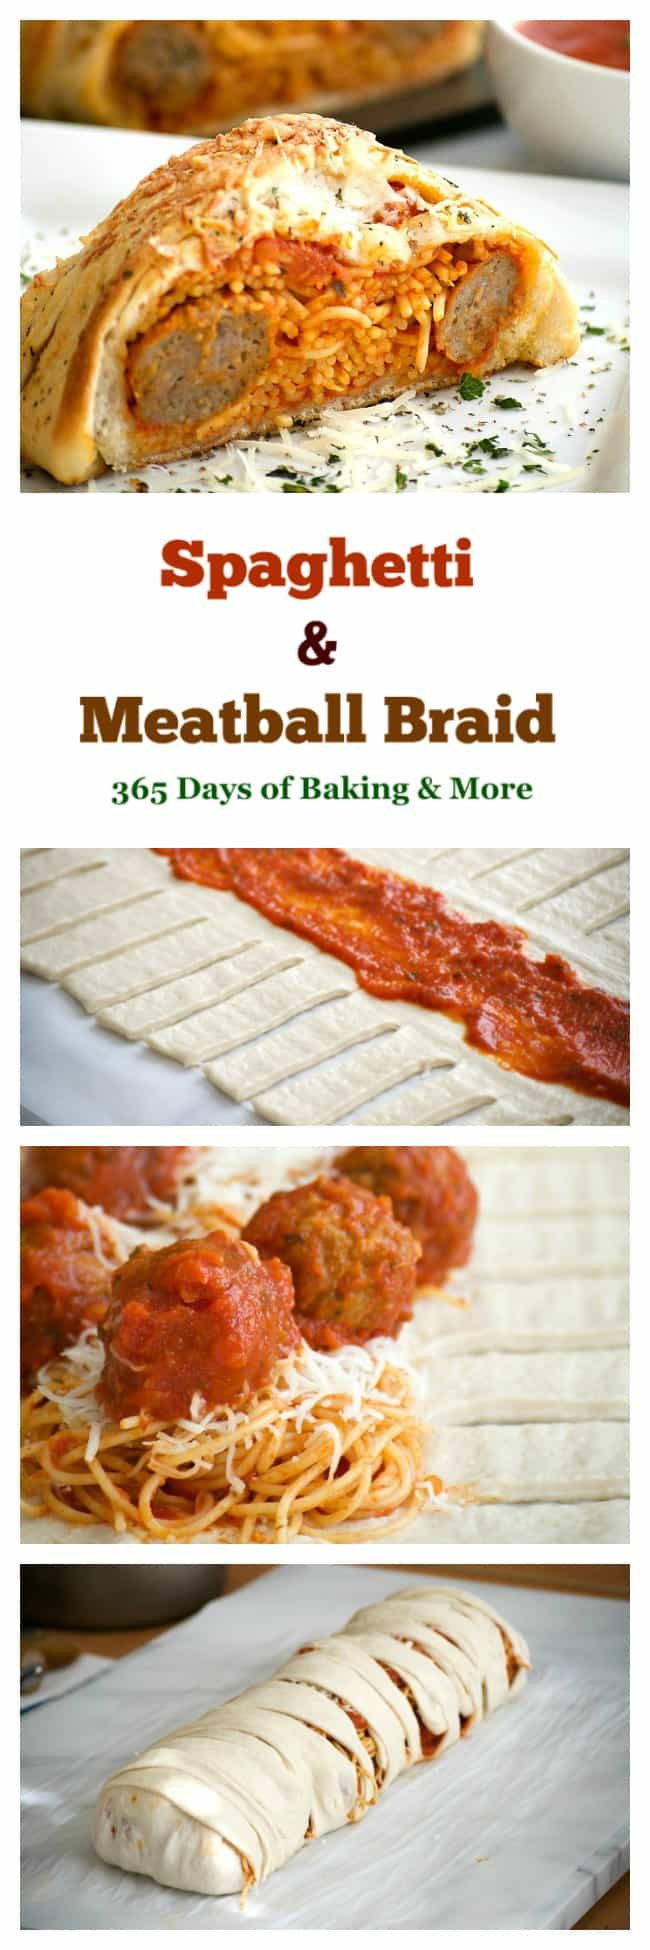 This Spaghetti and Meatball Braidis a new twist on good ol' comfort food - spaghetti and meatballs in pizza dough! It's a fun new way to feed the family.